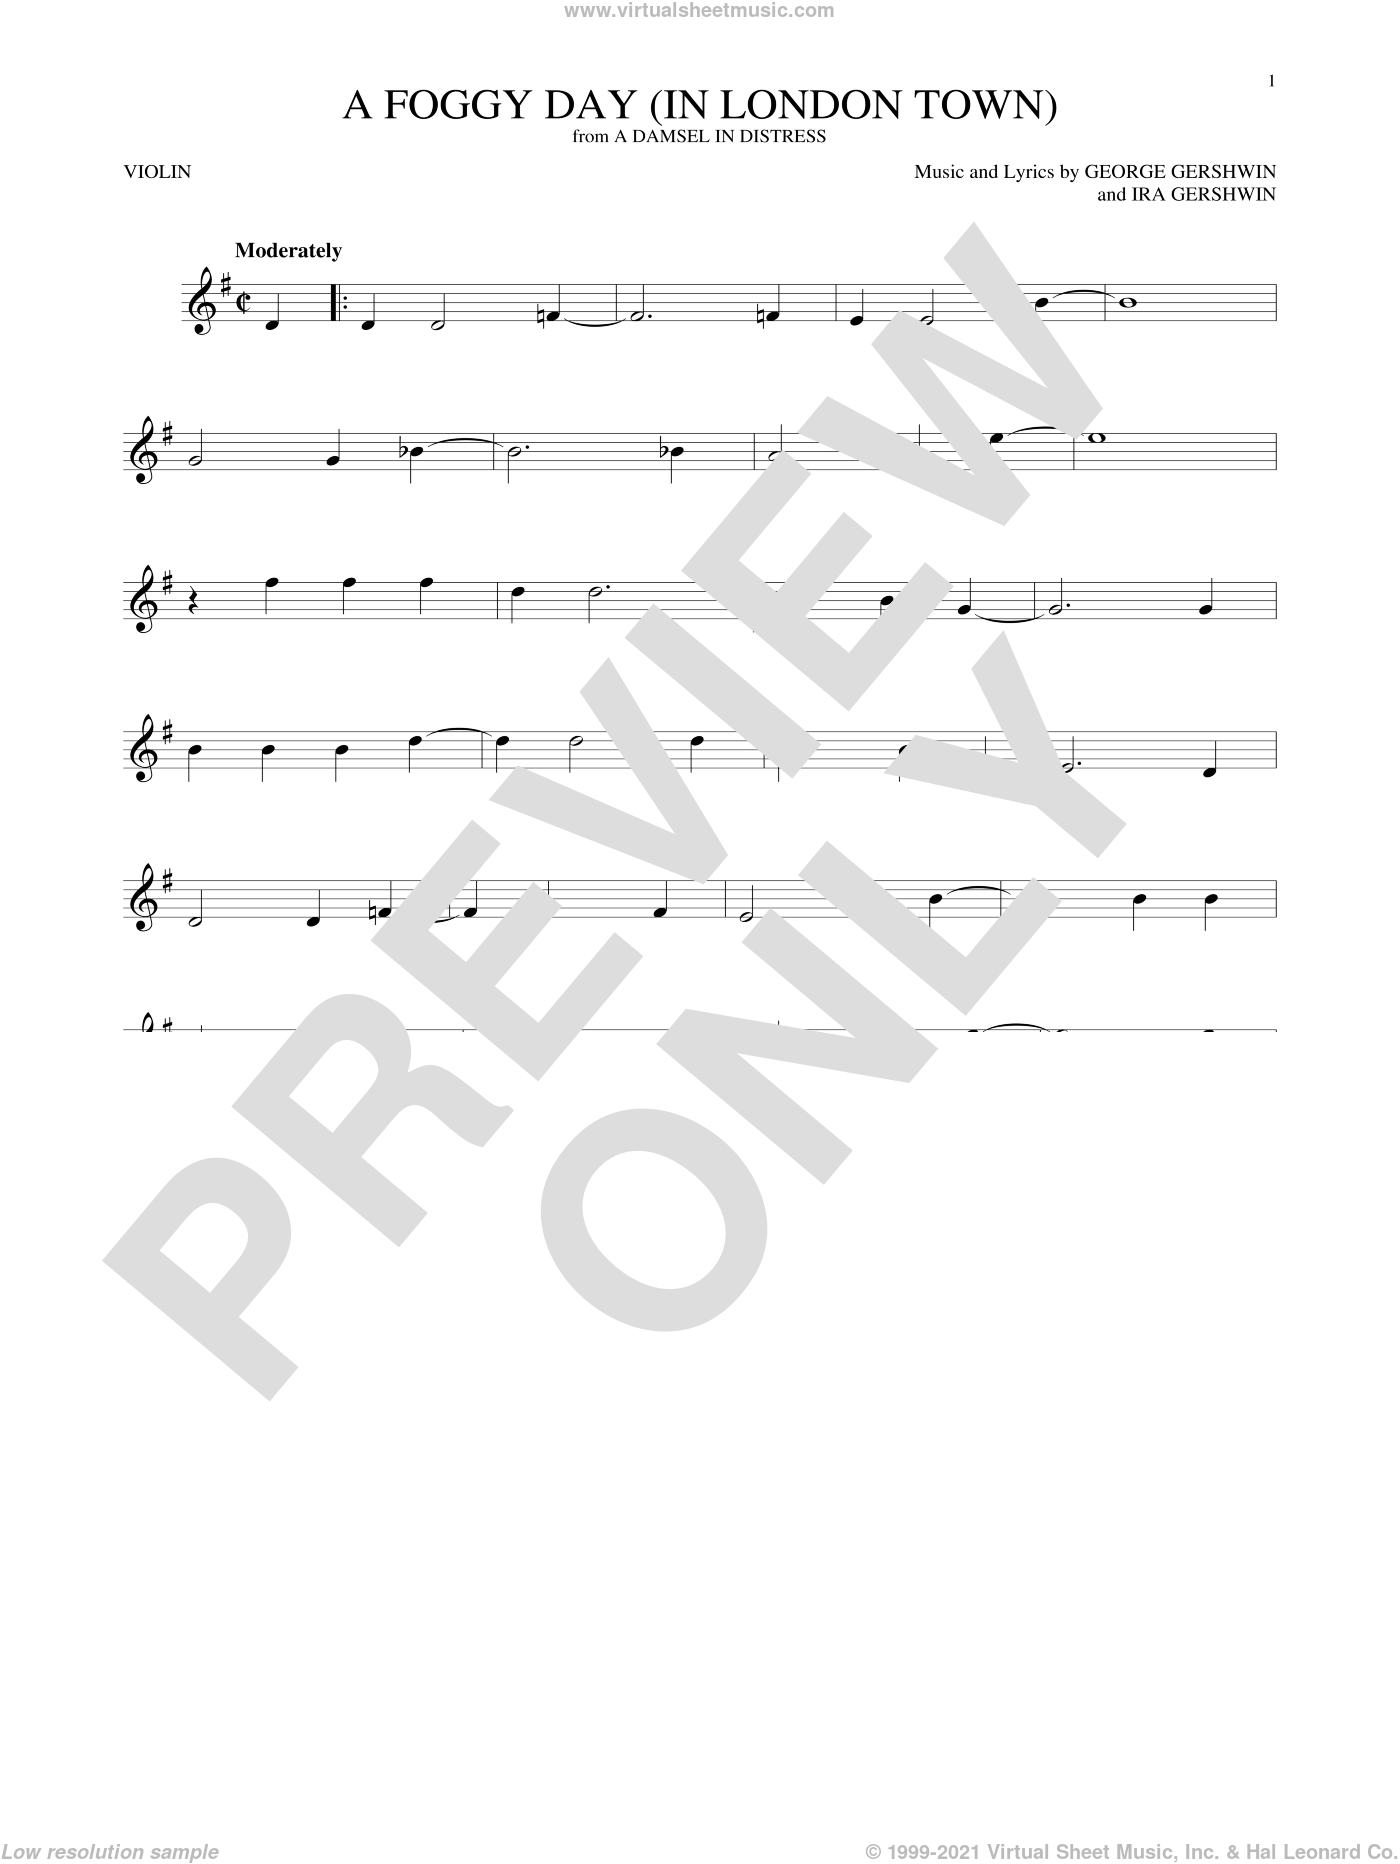 A Foggy Day (In London Town) sheet music for violin solo by George Gershwin and Ira Gershwin, intermediate skill level